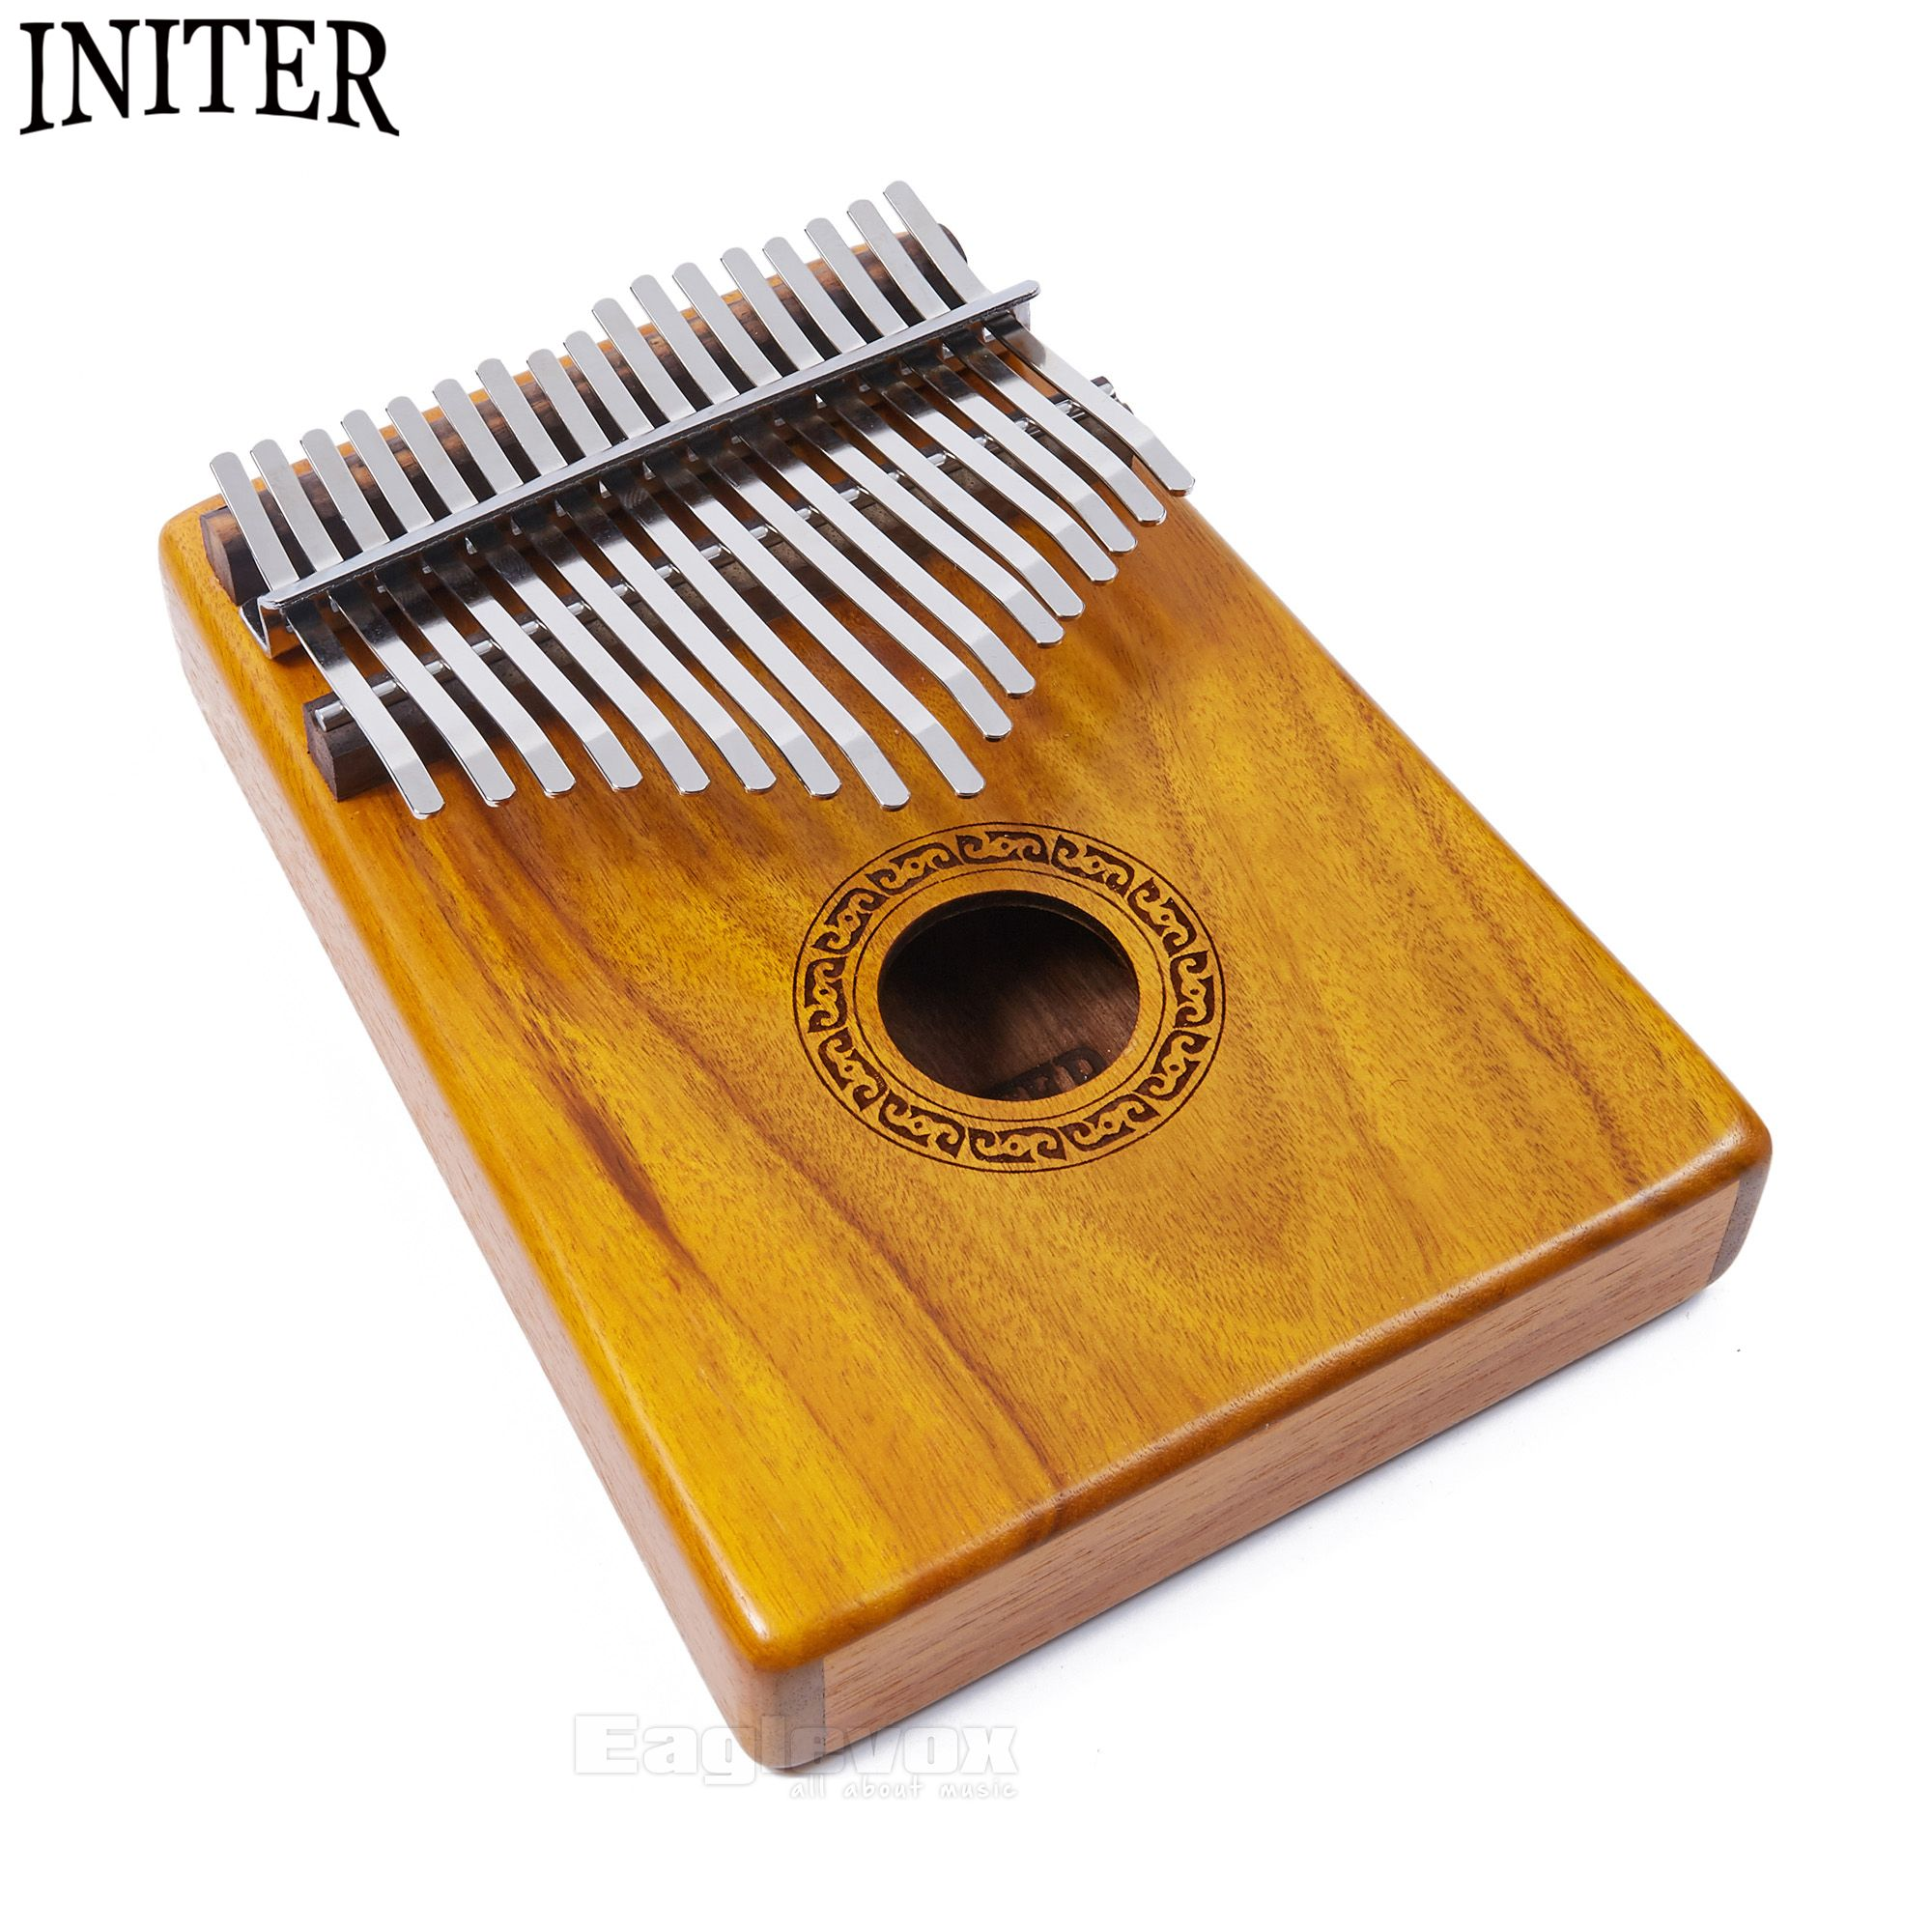 Initer Kalimba 17 Keys Acacia Thumb Piano Traditional African Music Instrument With Free Carry Bag and Tuning Tool 17 Notes